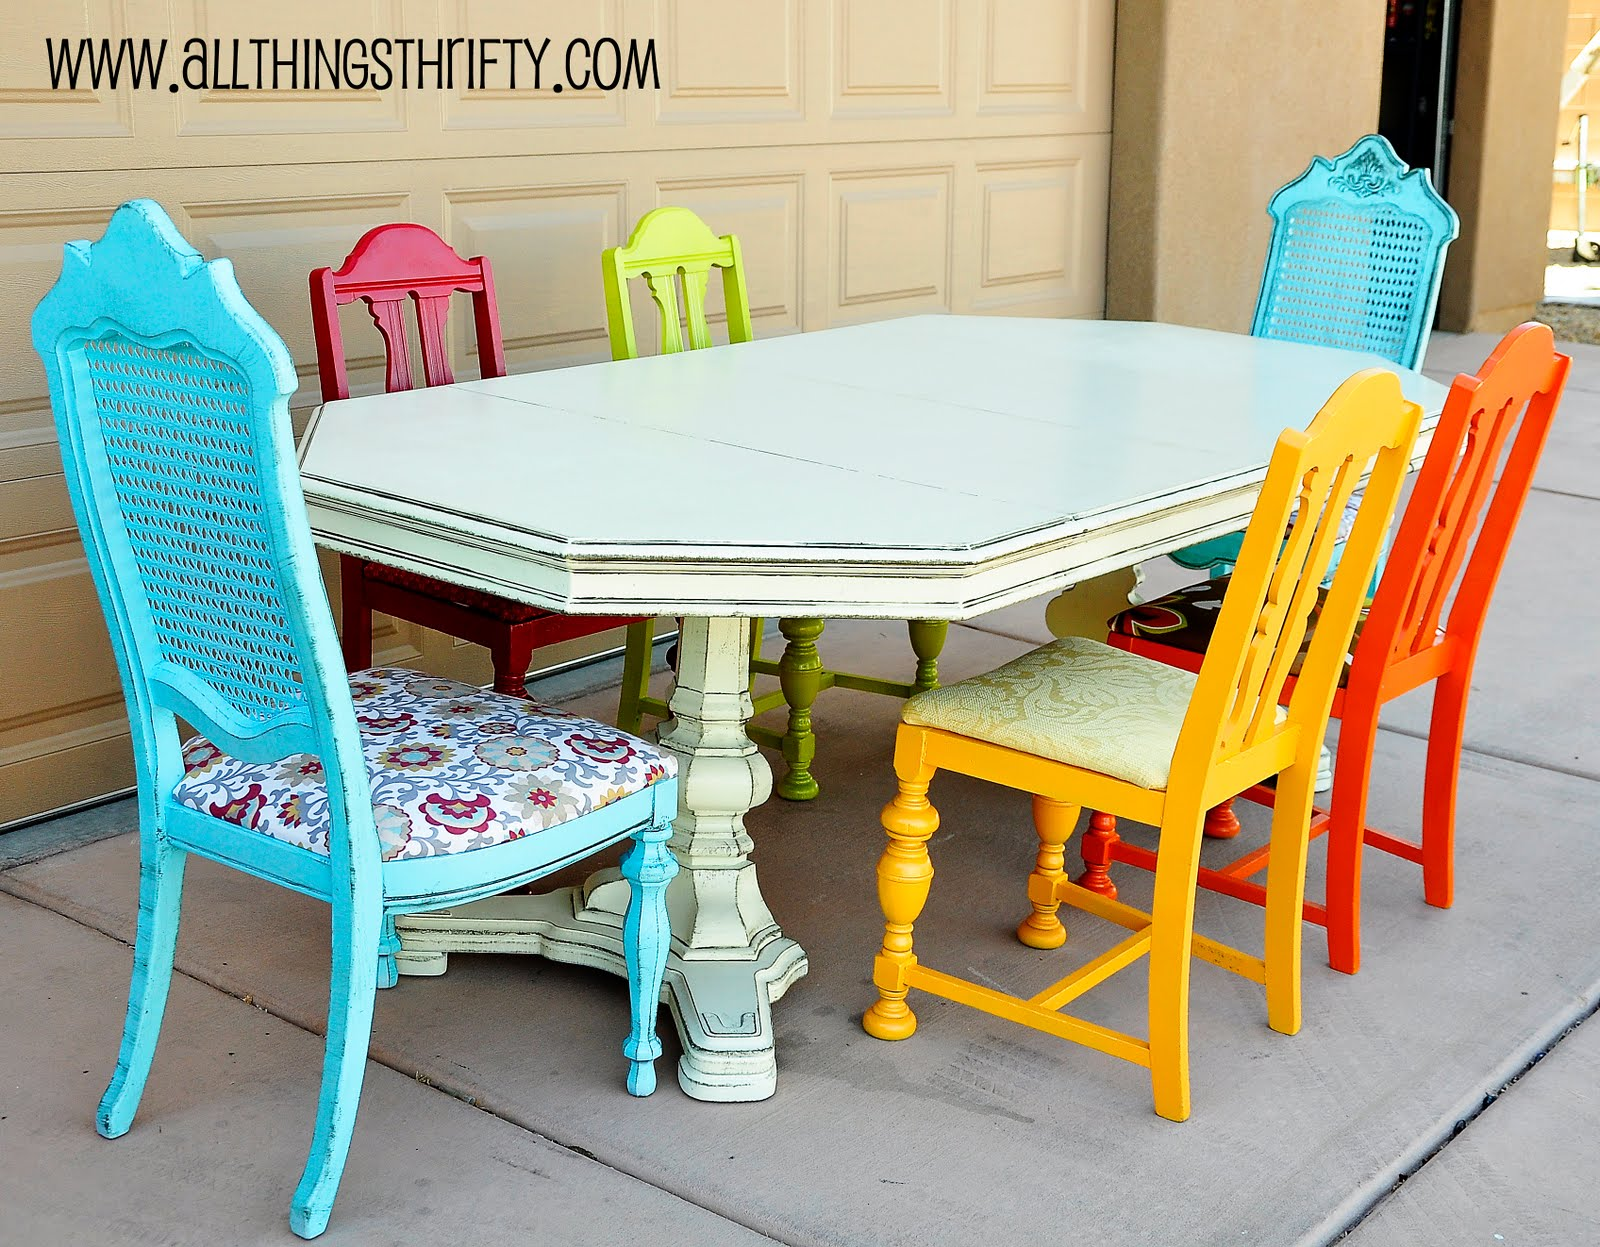 Mismatched Dining Chairs Rocking Chair With Cushions Philippines Tutorial Glazing Furniture Video Part 3